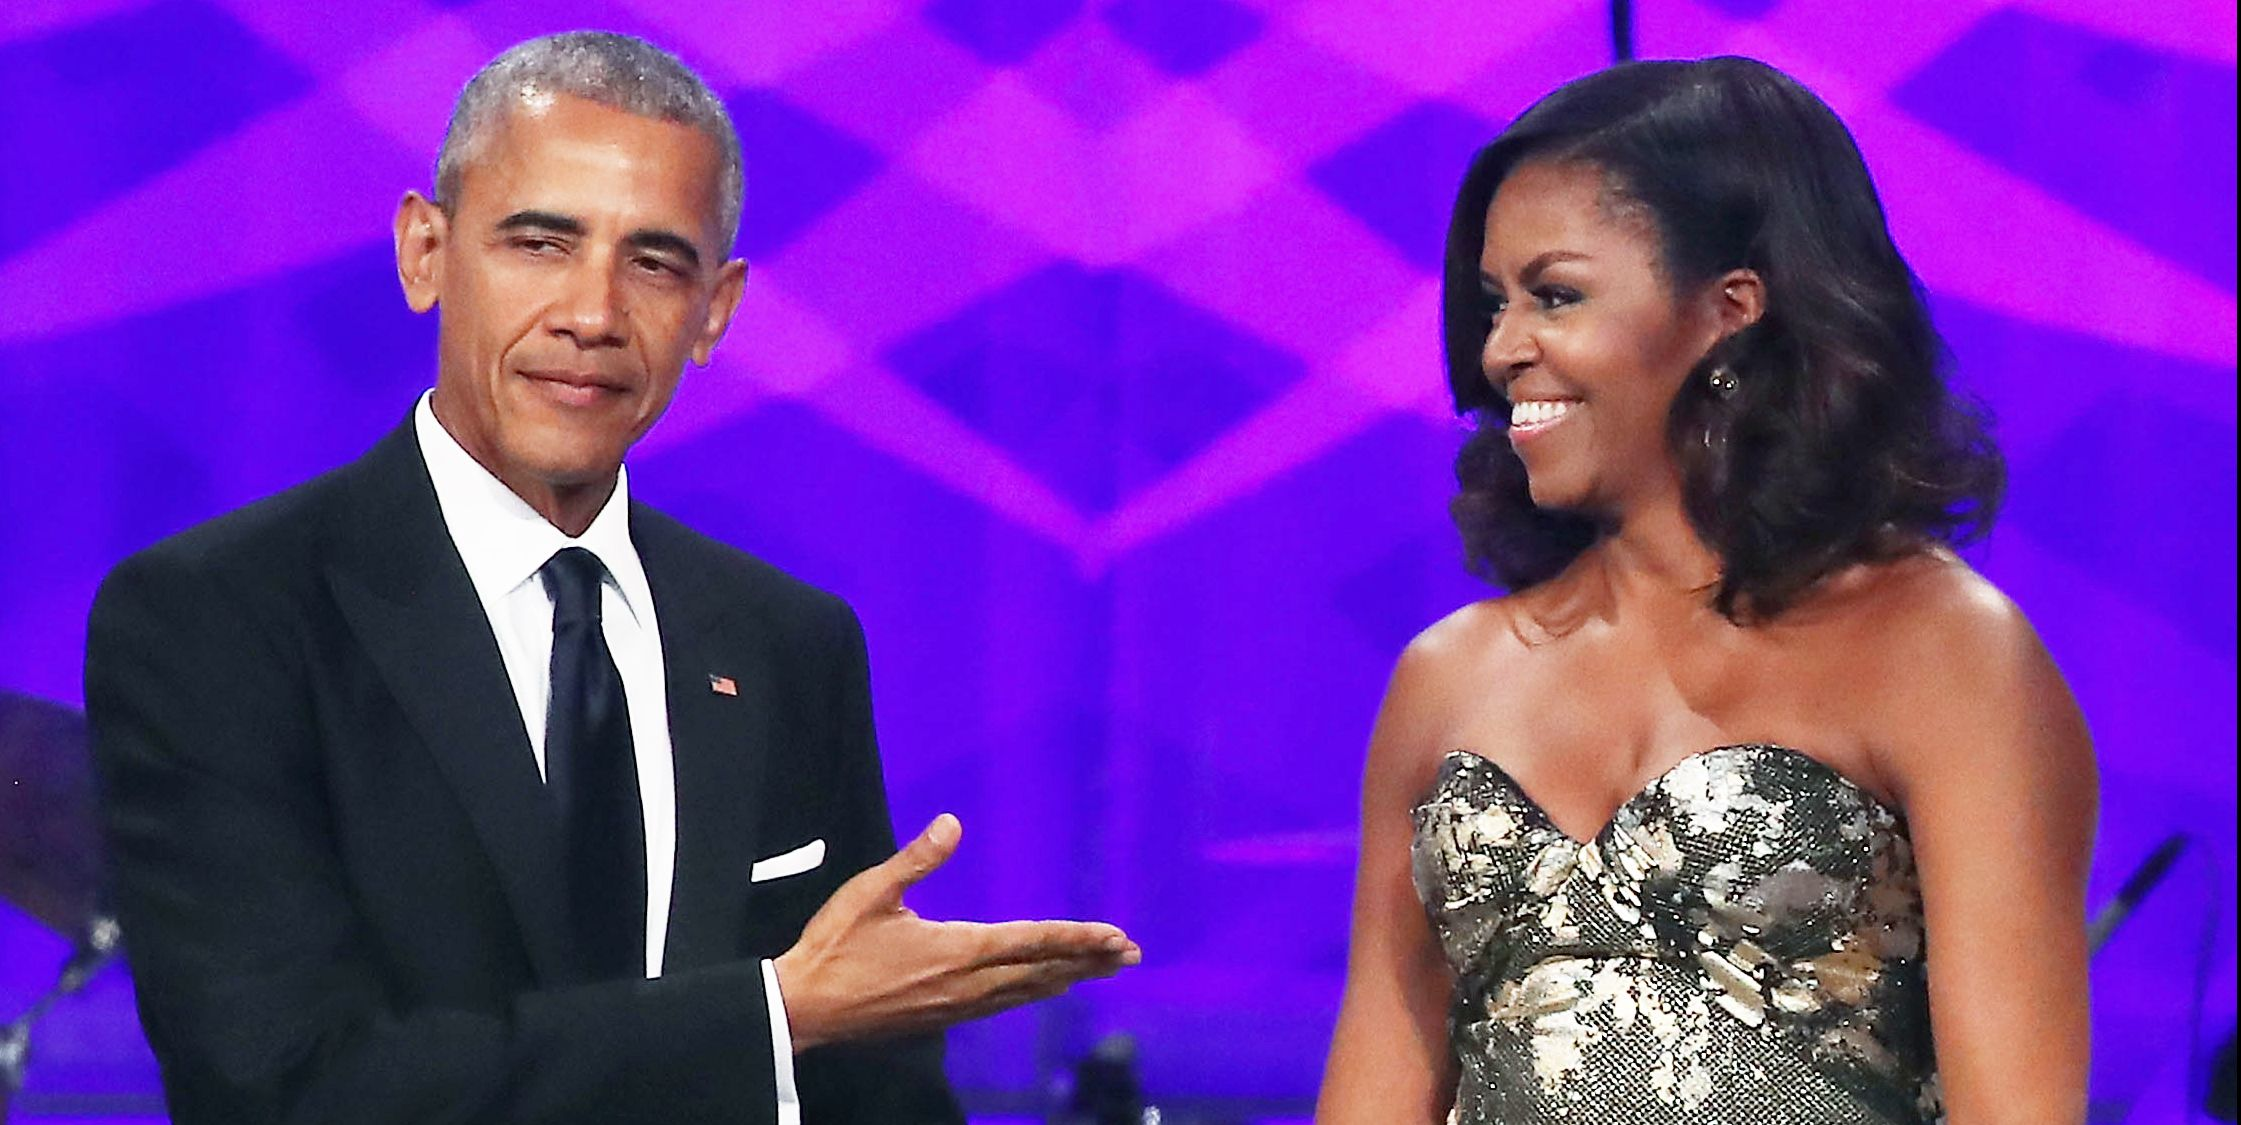 Barack Obama's Review Of Michelle Obama's 'Becoming' Memoir Is The Only One That Matters